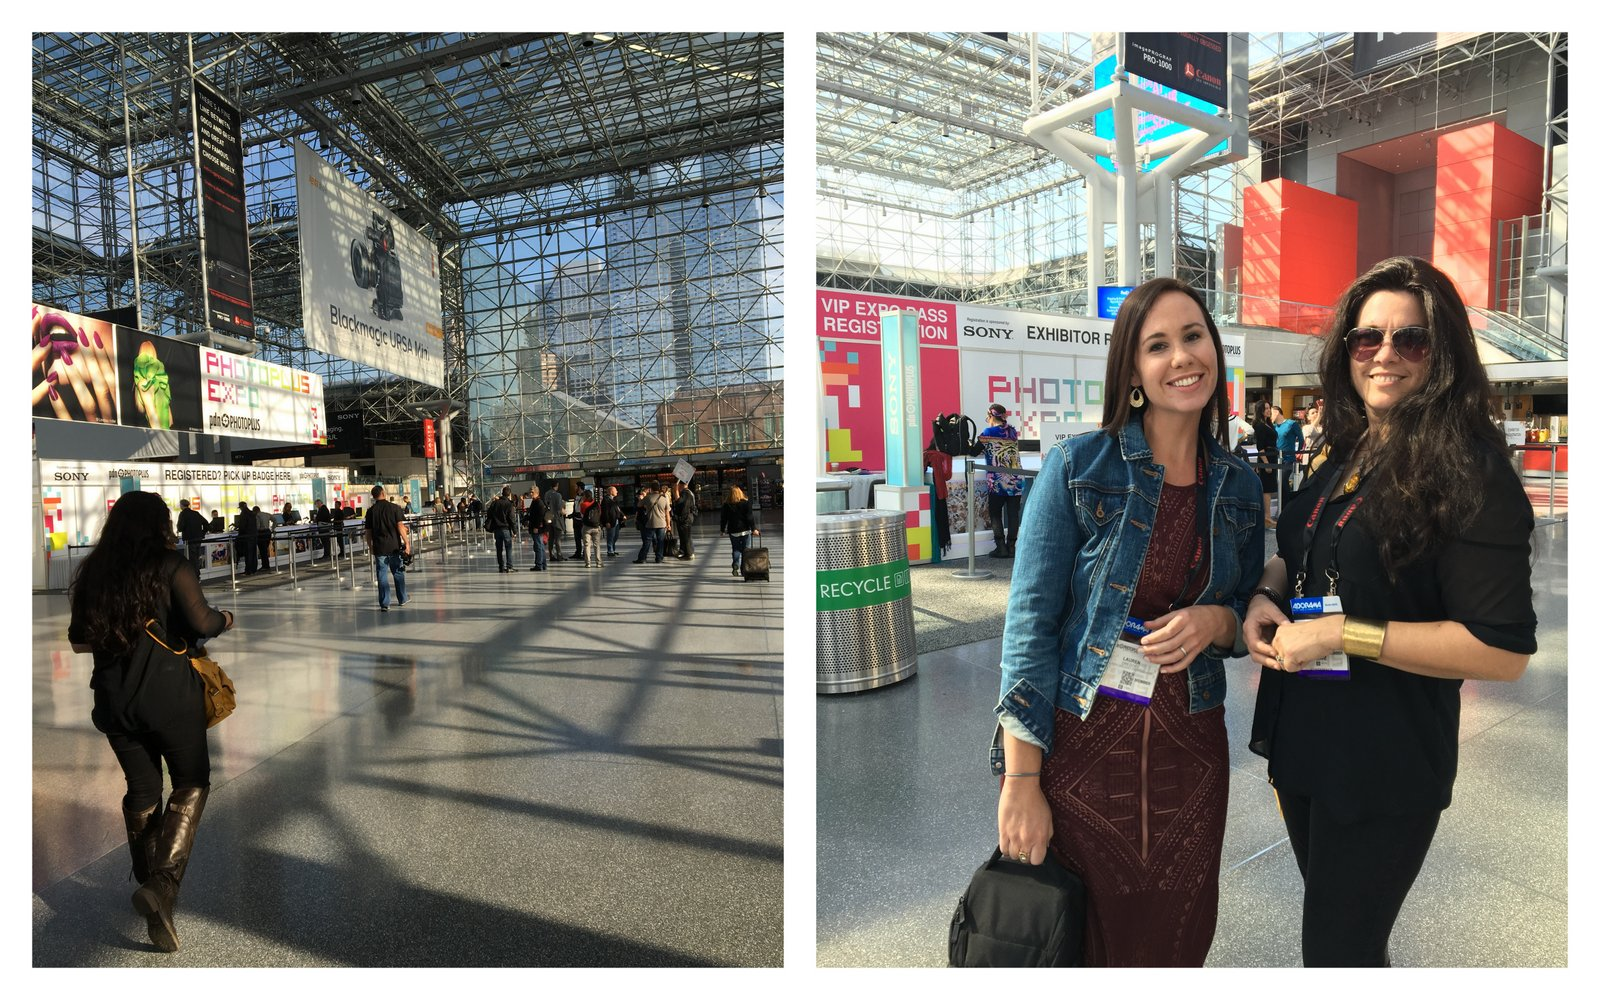 Left: the Javitz convention center where Photoplus 2015 was held.  Big place.  Right: my dear friend and travel buddy Cat with me at the convention center